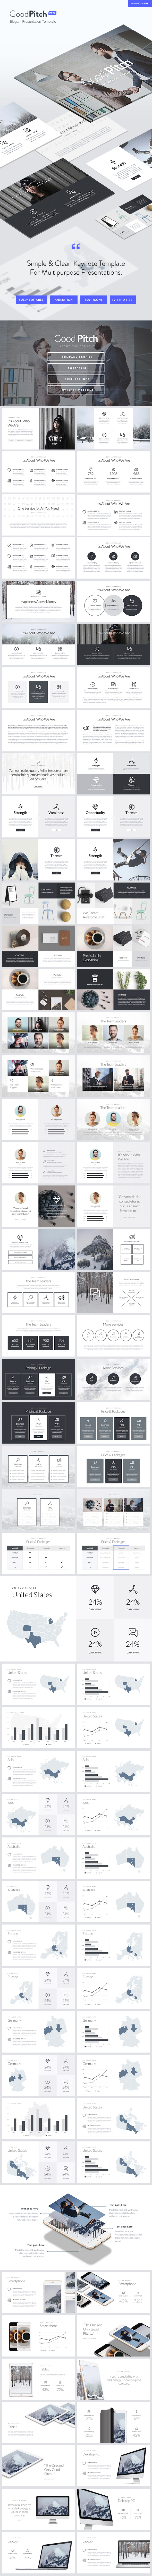 Good Pitch - Elegant Powerpoint Template - PowerPoint Templates Presentation Templates